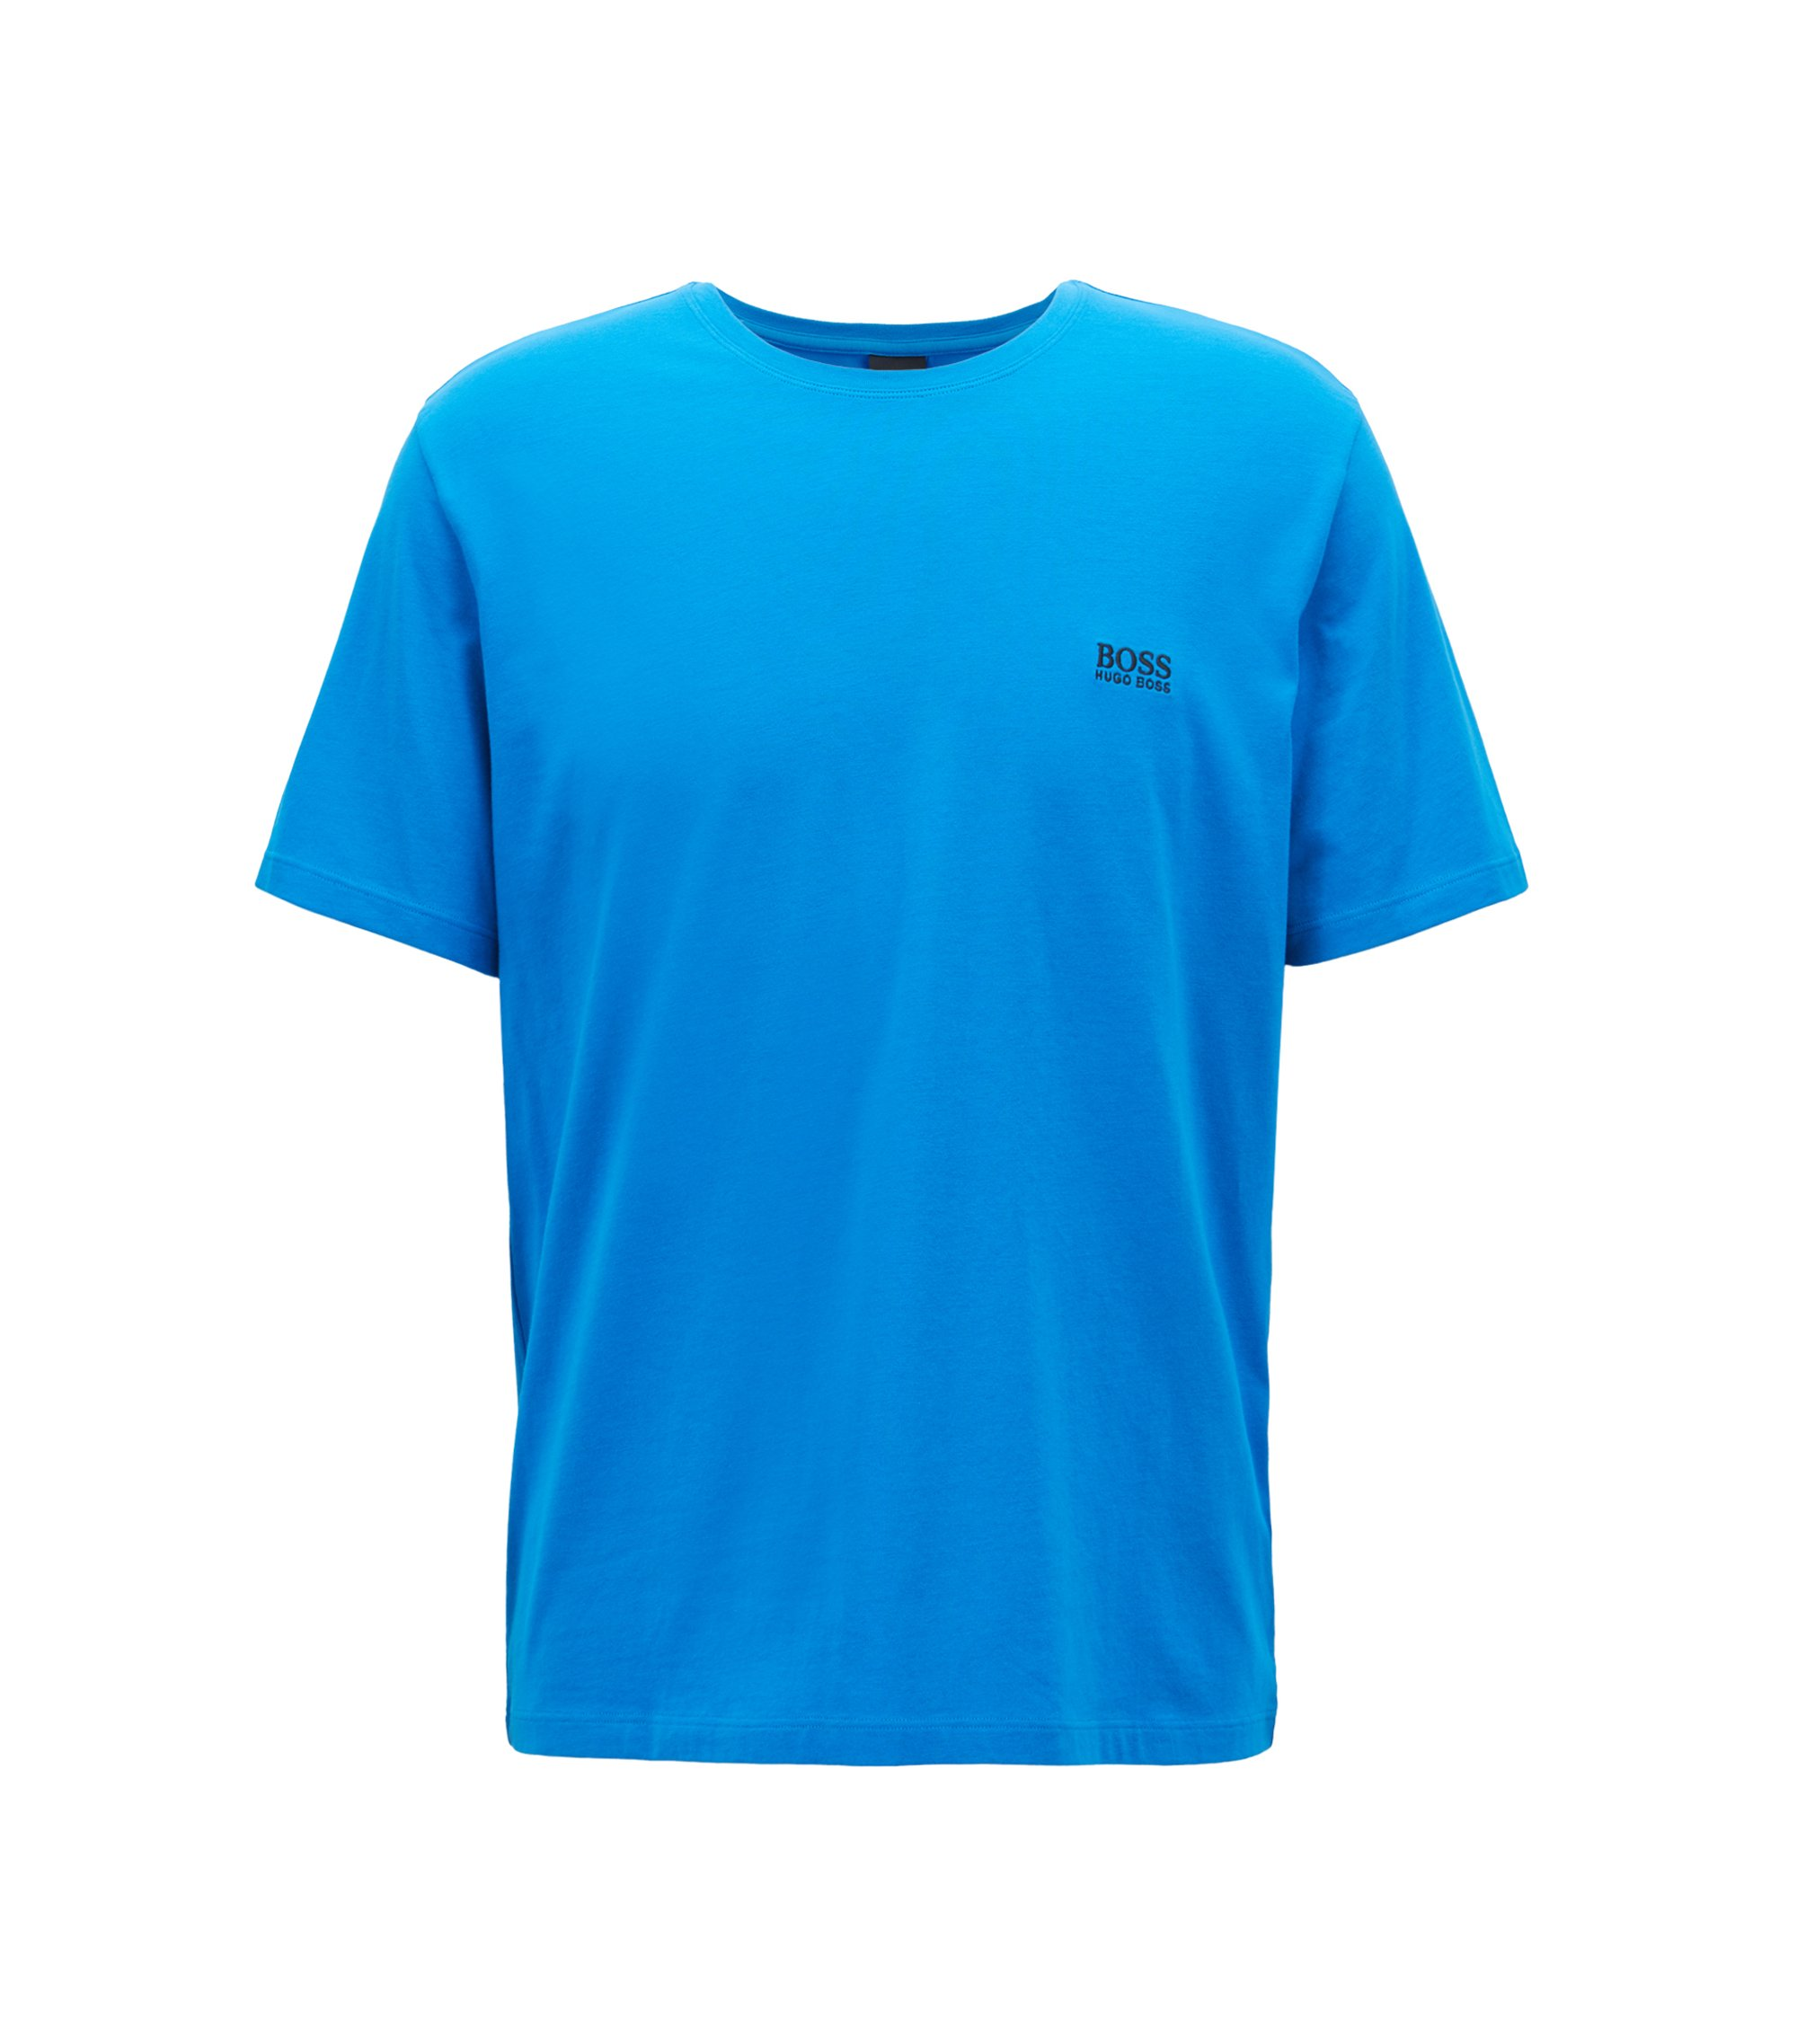 Loungewear-T-Shirt aus Stretch-Baumwolle, Blau